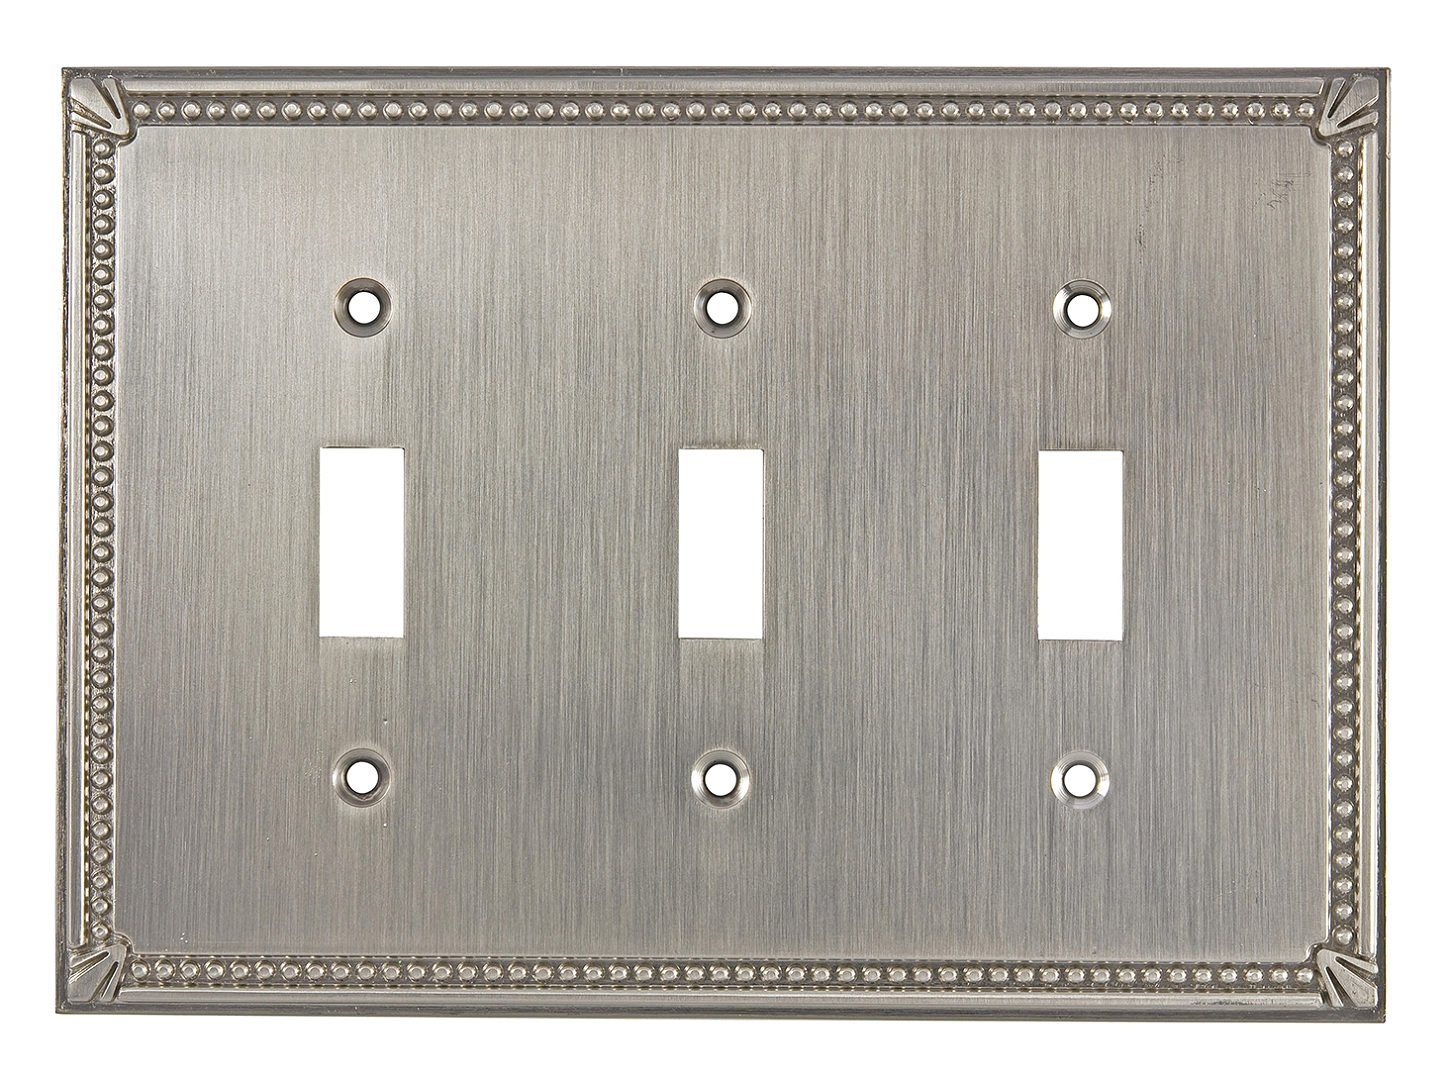 Brushed Oil-Rubbed Bronze 4.84 BP86333BORB Richelieu Hardware Traditional Style 3 Toggle Entries Switch Plate 4.84